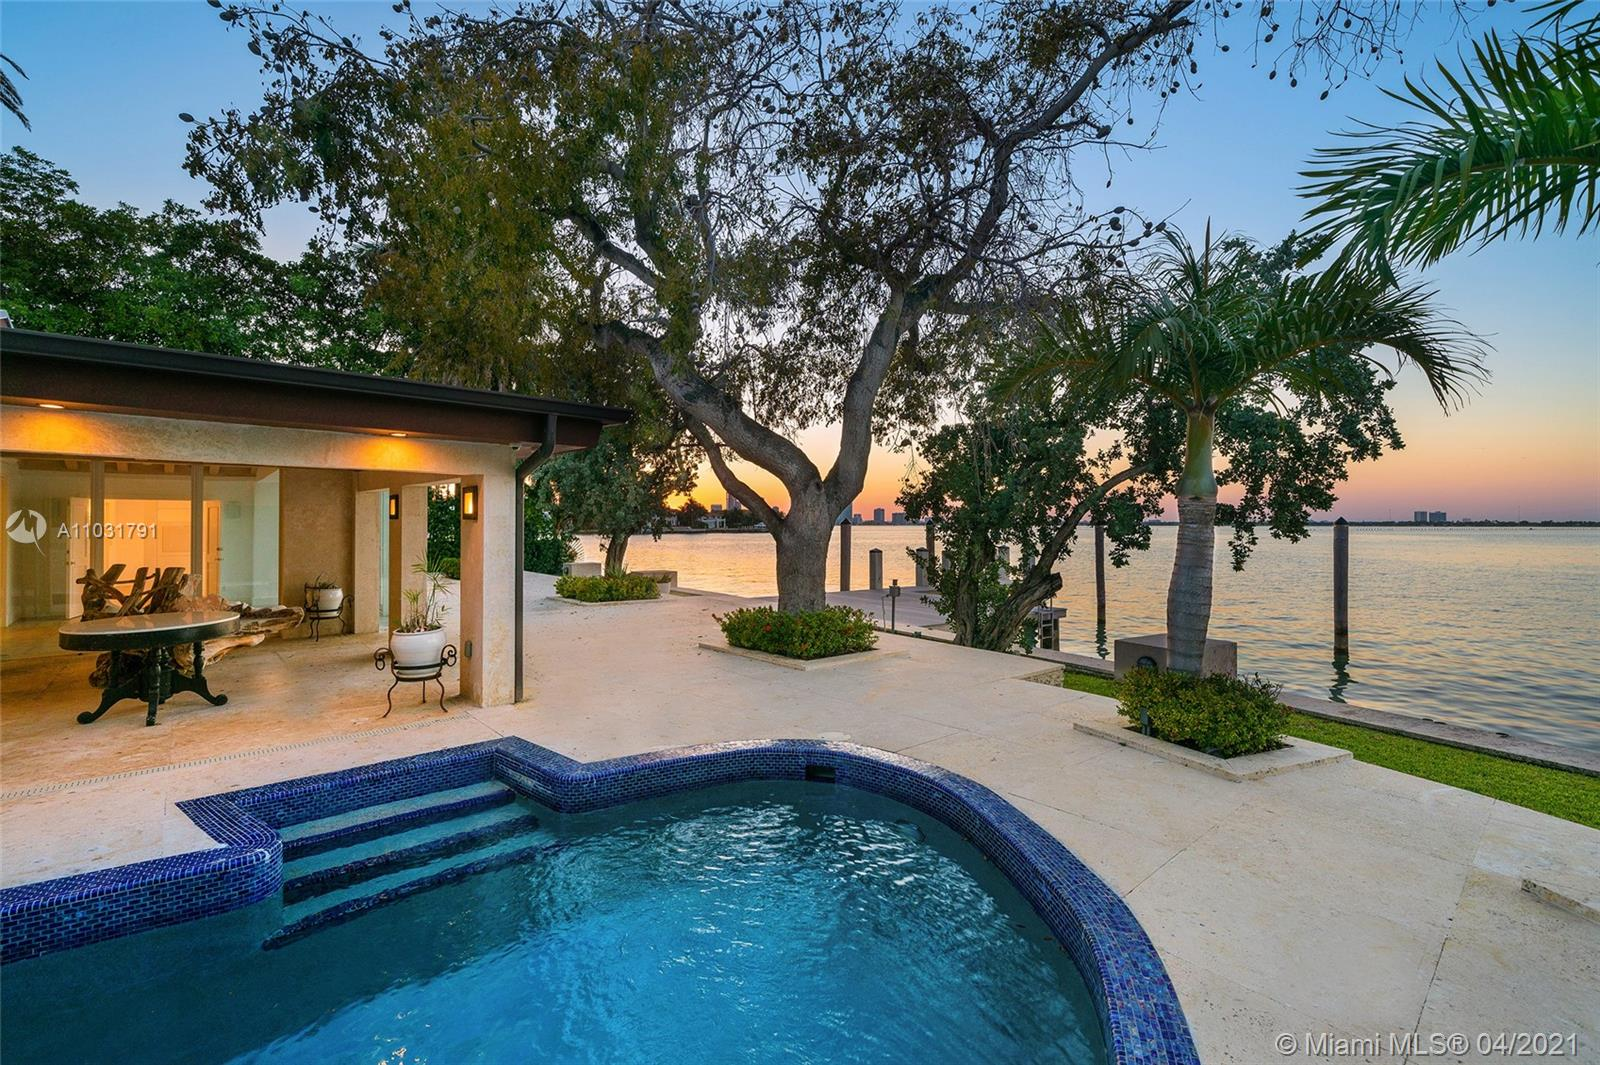 This Bayfront home is perfectly located on the coveted tip of the Venetian Islands. The 5BR/5BA home sits on a 13,382 SF lot w/open Biscayne Bay & stunning sunset views. Over 4,800 interior SF, wide plank tan oak & custom Cuban tile floors, high wood-beamed ceilings, sky lights & an interior courtyard. Spacious living room w/fireplace & wet bar, family room w/full BA, & dining room all w/large windows & water views. Gourmet kitchen sports top-of-the-line Wolf & Samsung appliances, granite center island, eat-in seating & adjacent family area to relax. Bay facing principal suite offers direct terrace access, voluminous walk-in closet & elegant principal bathroom w/walk-in glass shower & pedestal soaking tub. Large pool, deck w/covered seating area, large dock, direct bay & Ocean access.